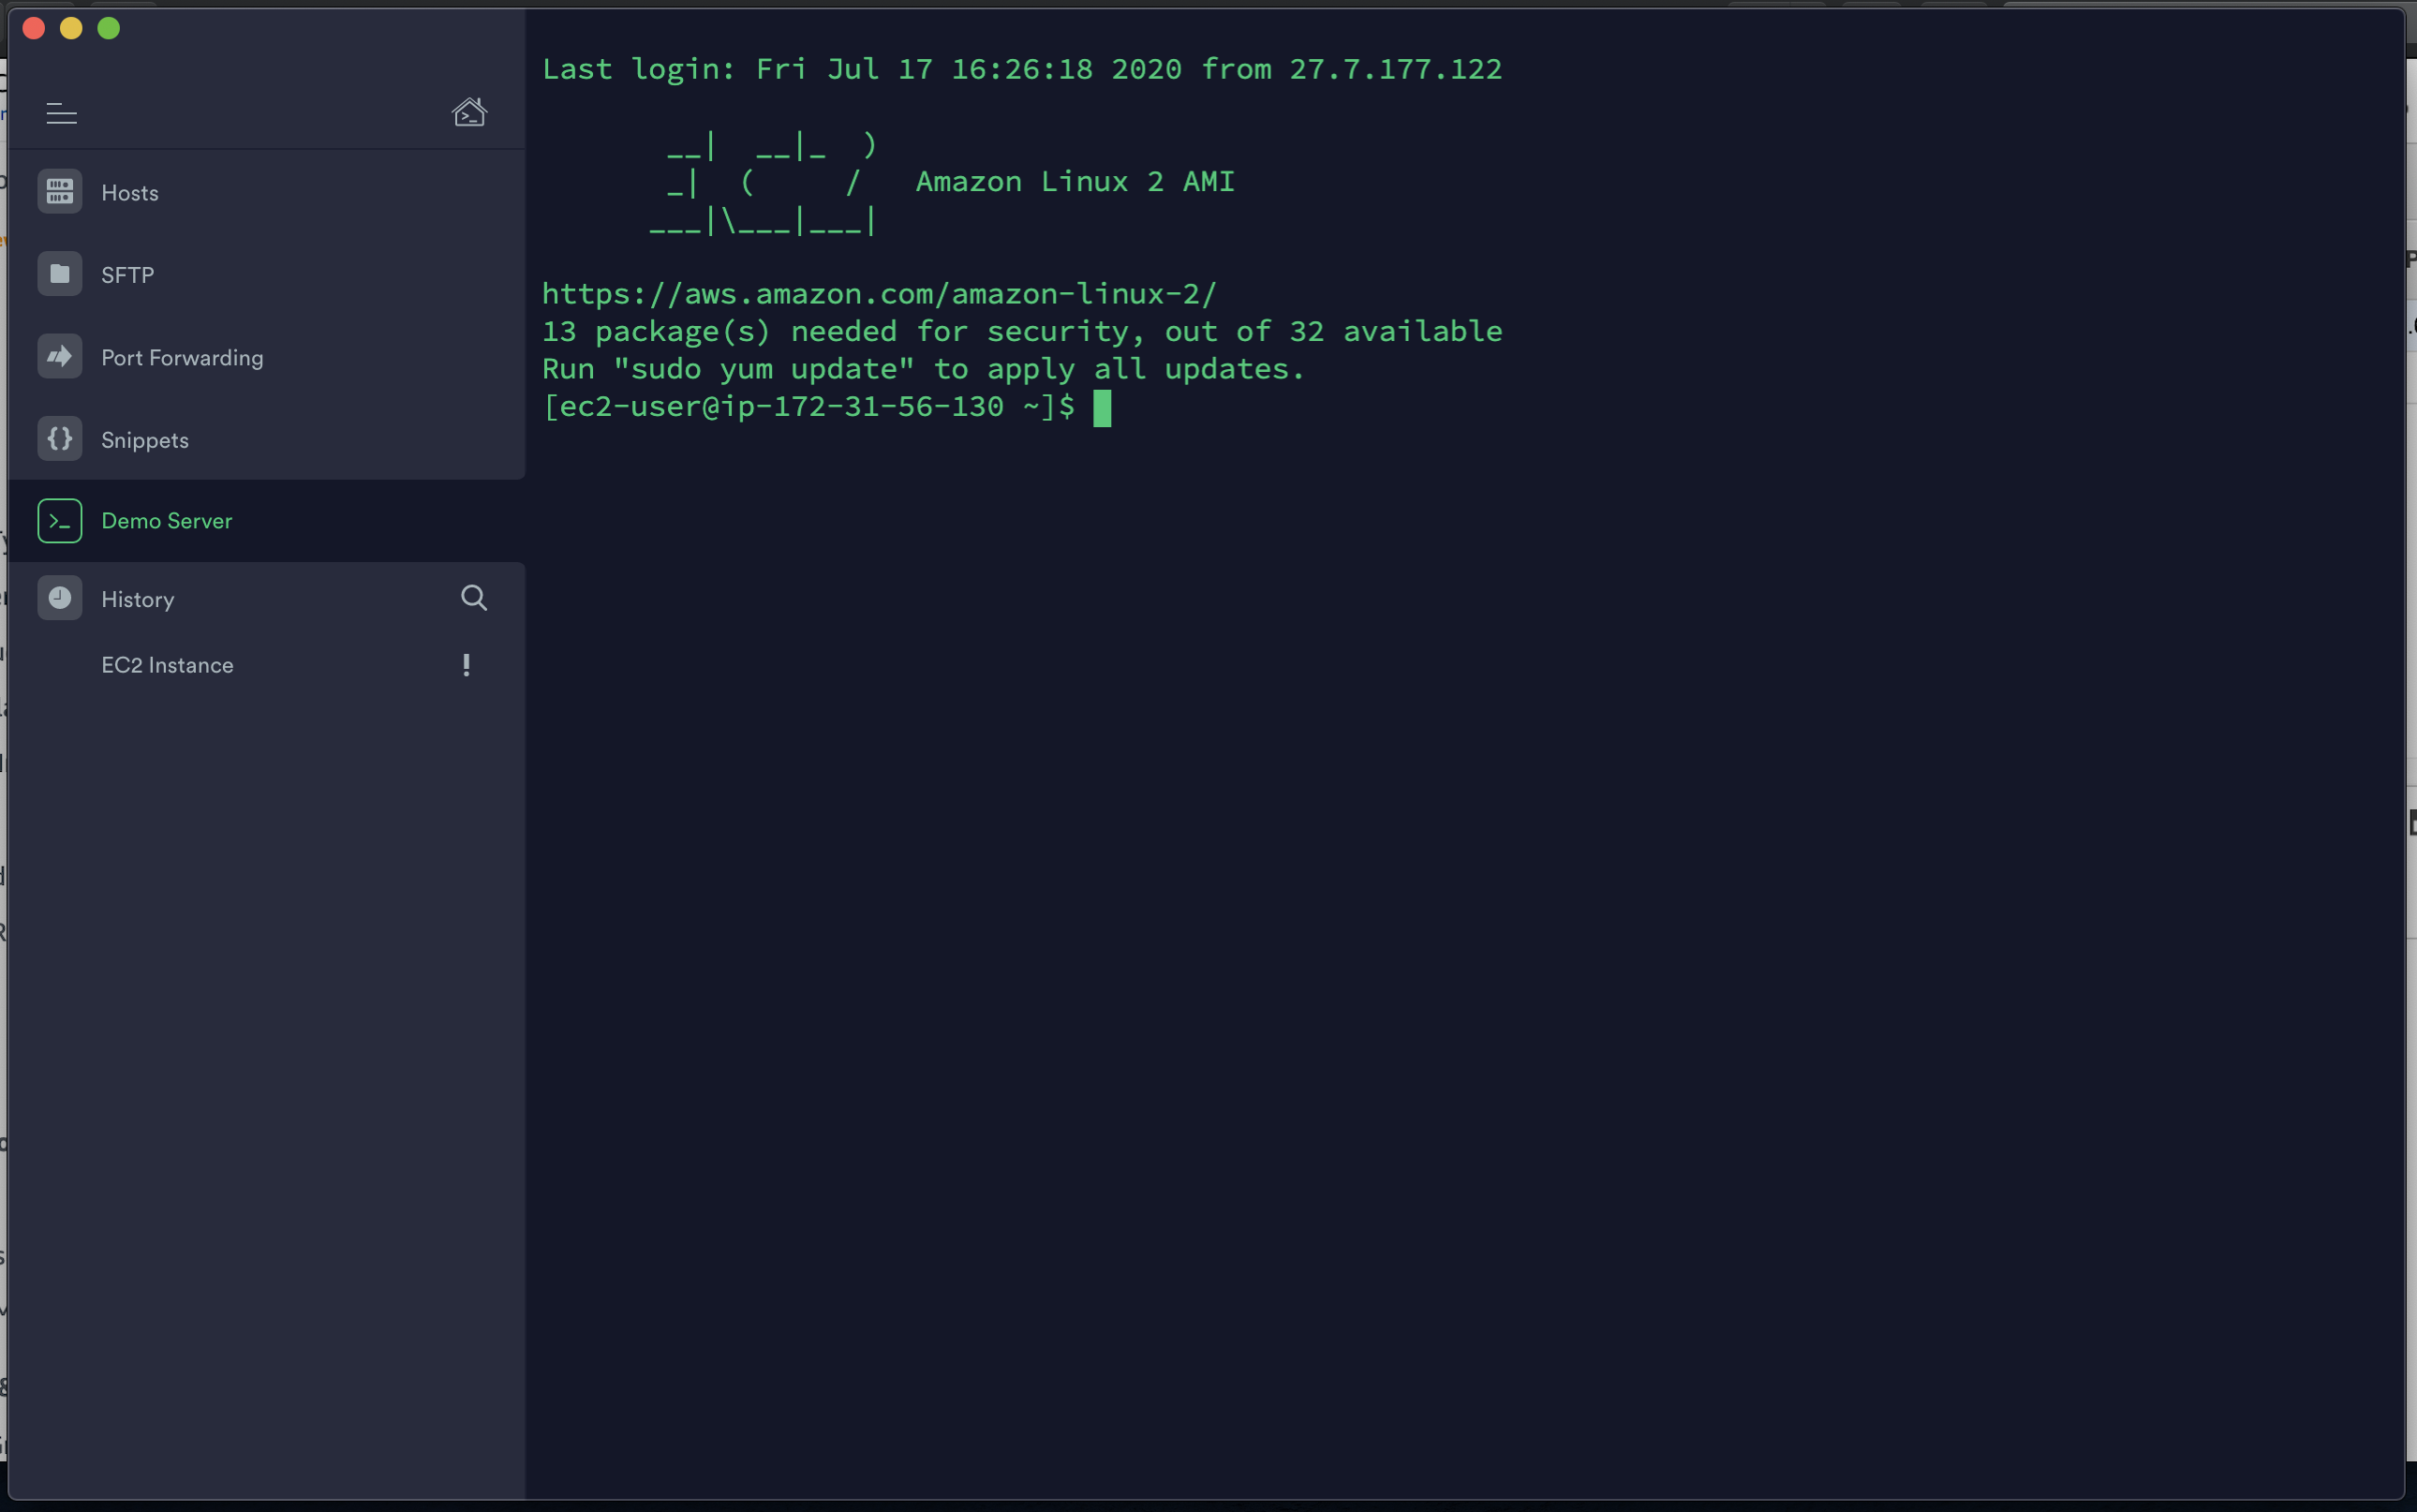 Connected to EC2 with Termius